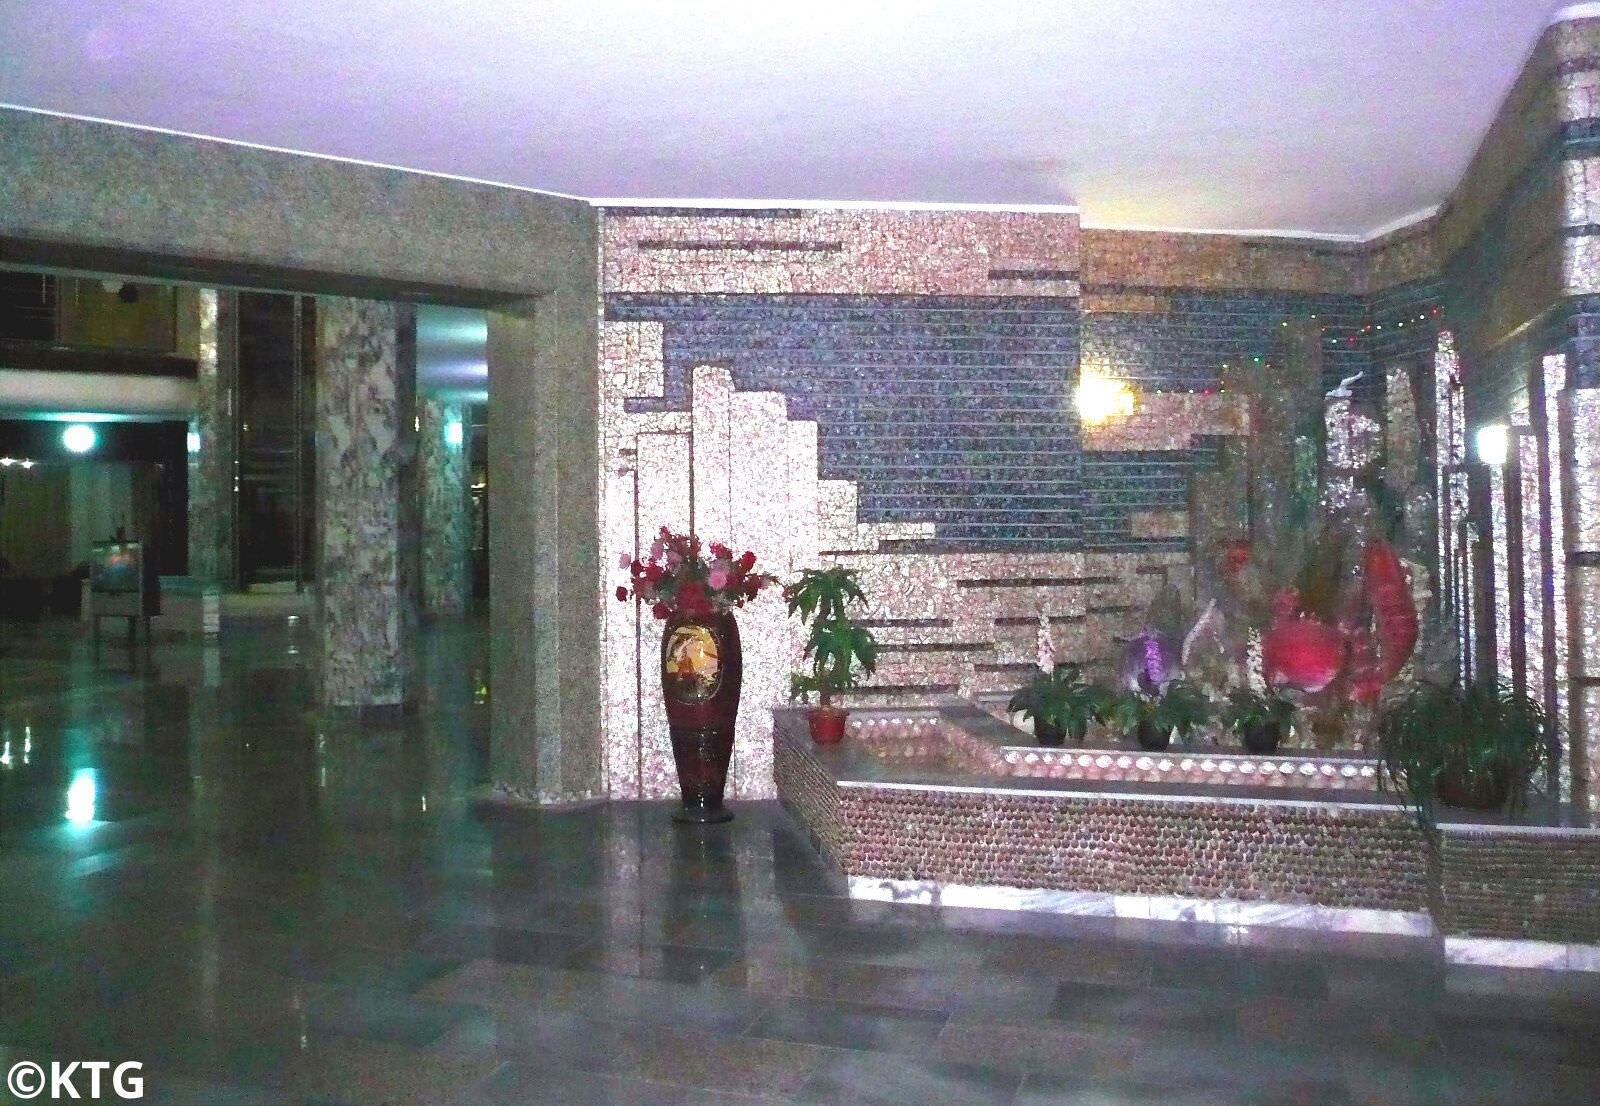 Lobby of the Dongmyong Hotel as spelled Tongmyong Hotel in Wonsan city, Kangwon province, North Korea (DPRK). Trip arranged by KTG Tours